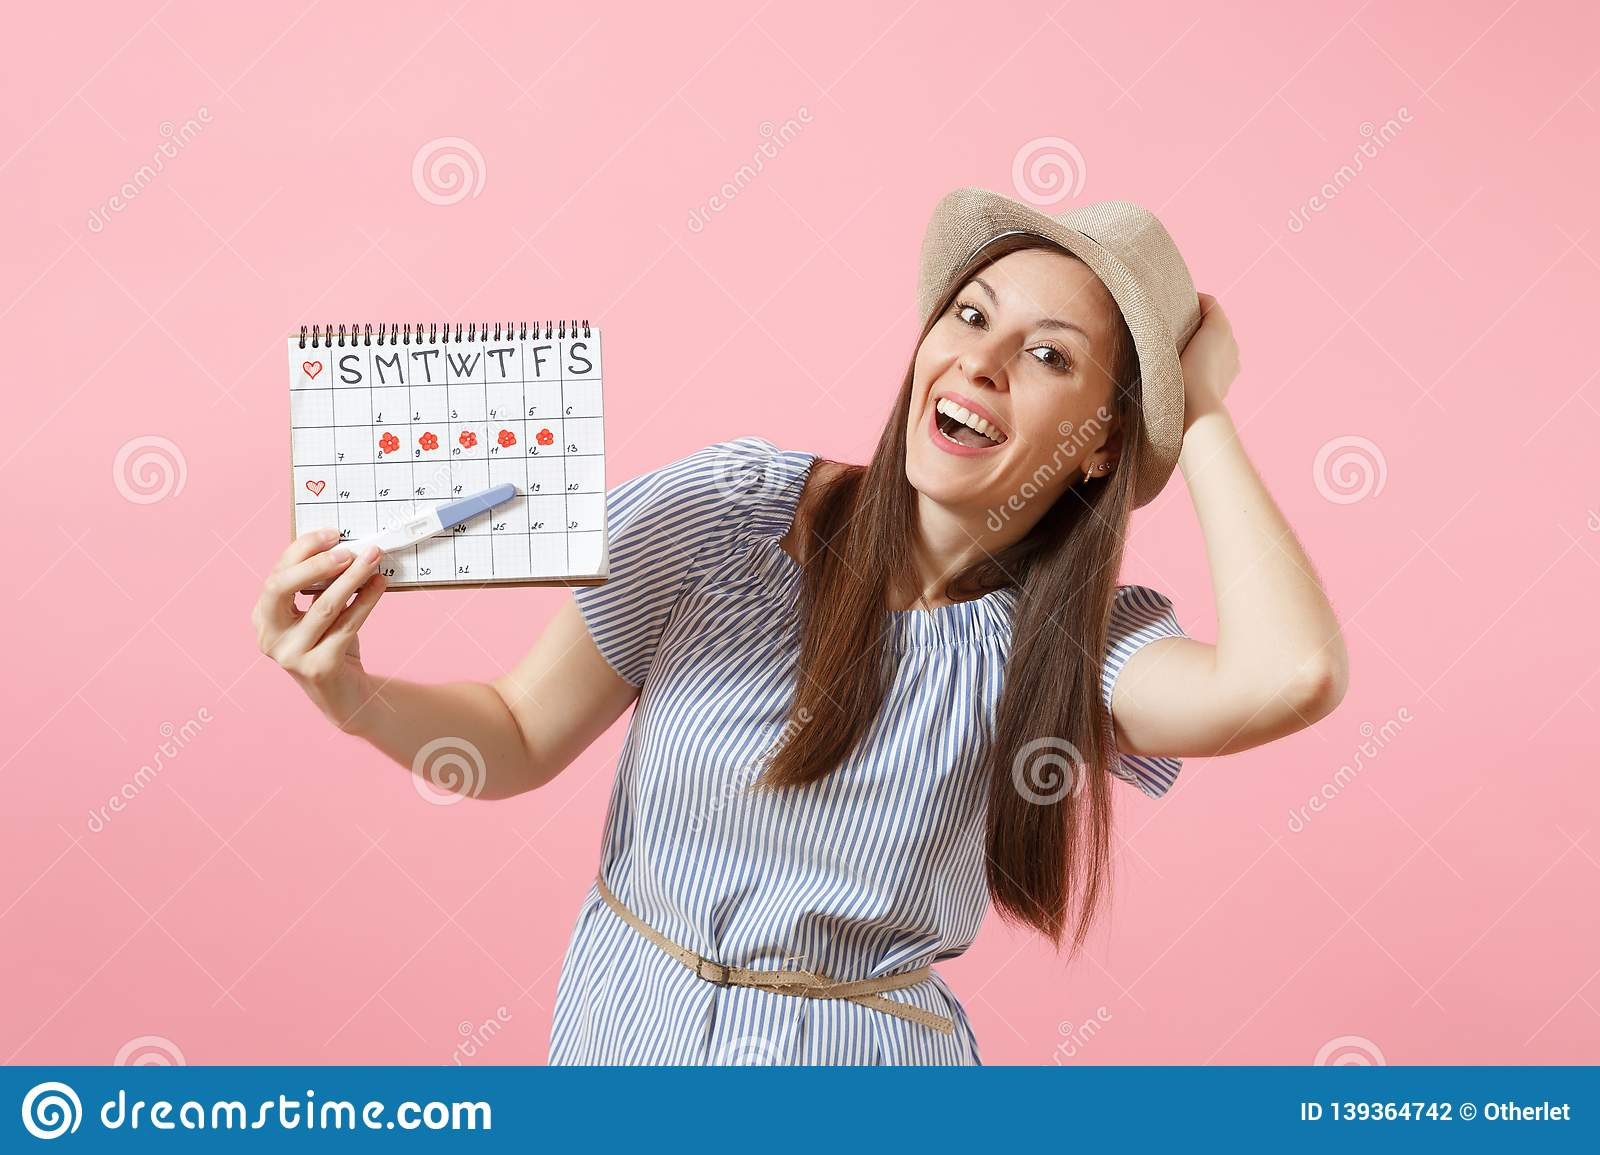 excited-happy-woman-blue-dress-hat-hold-